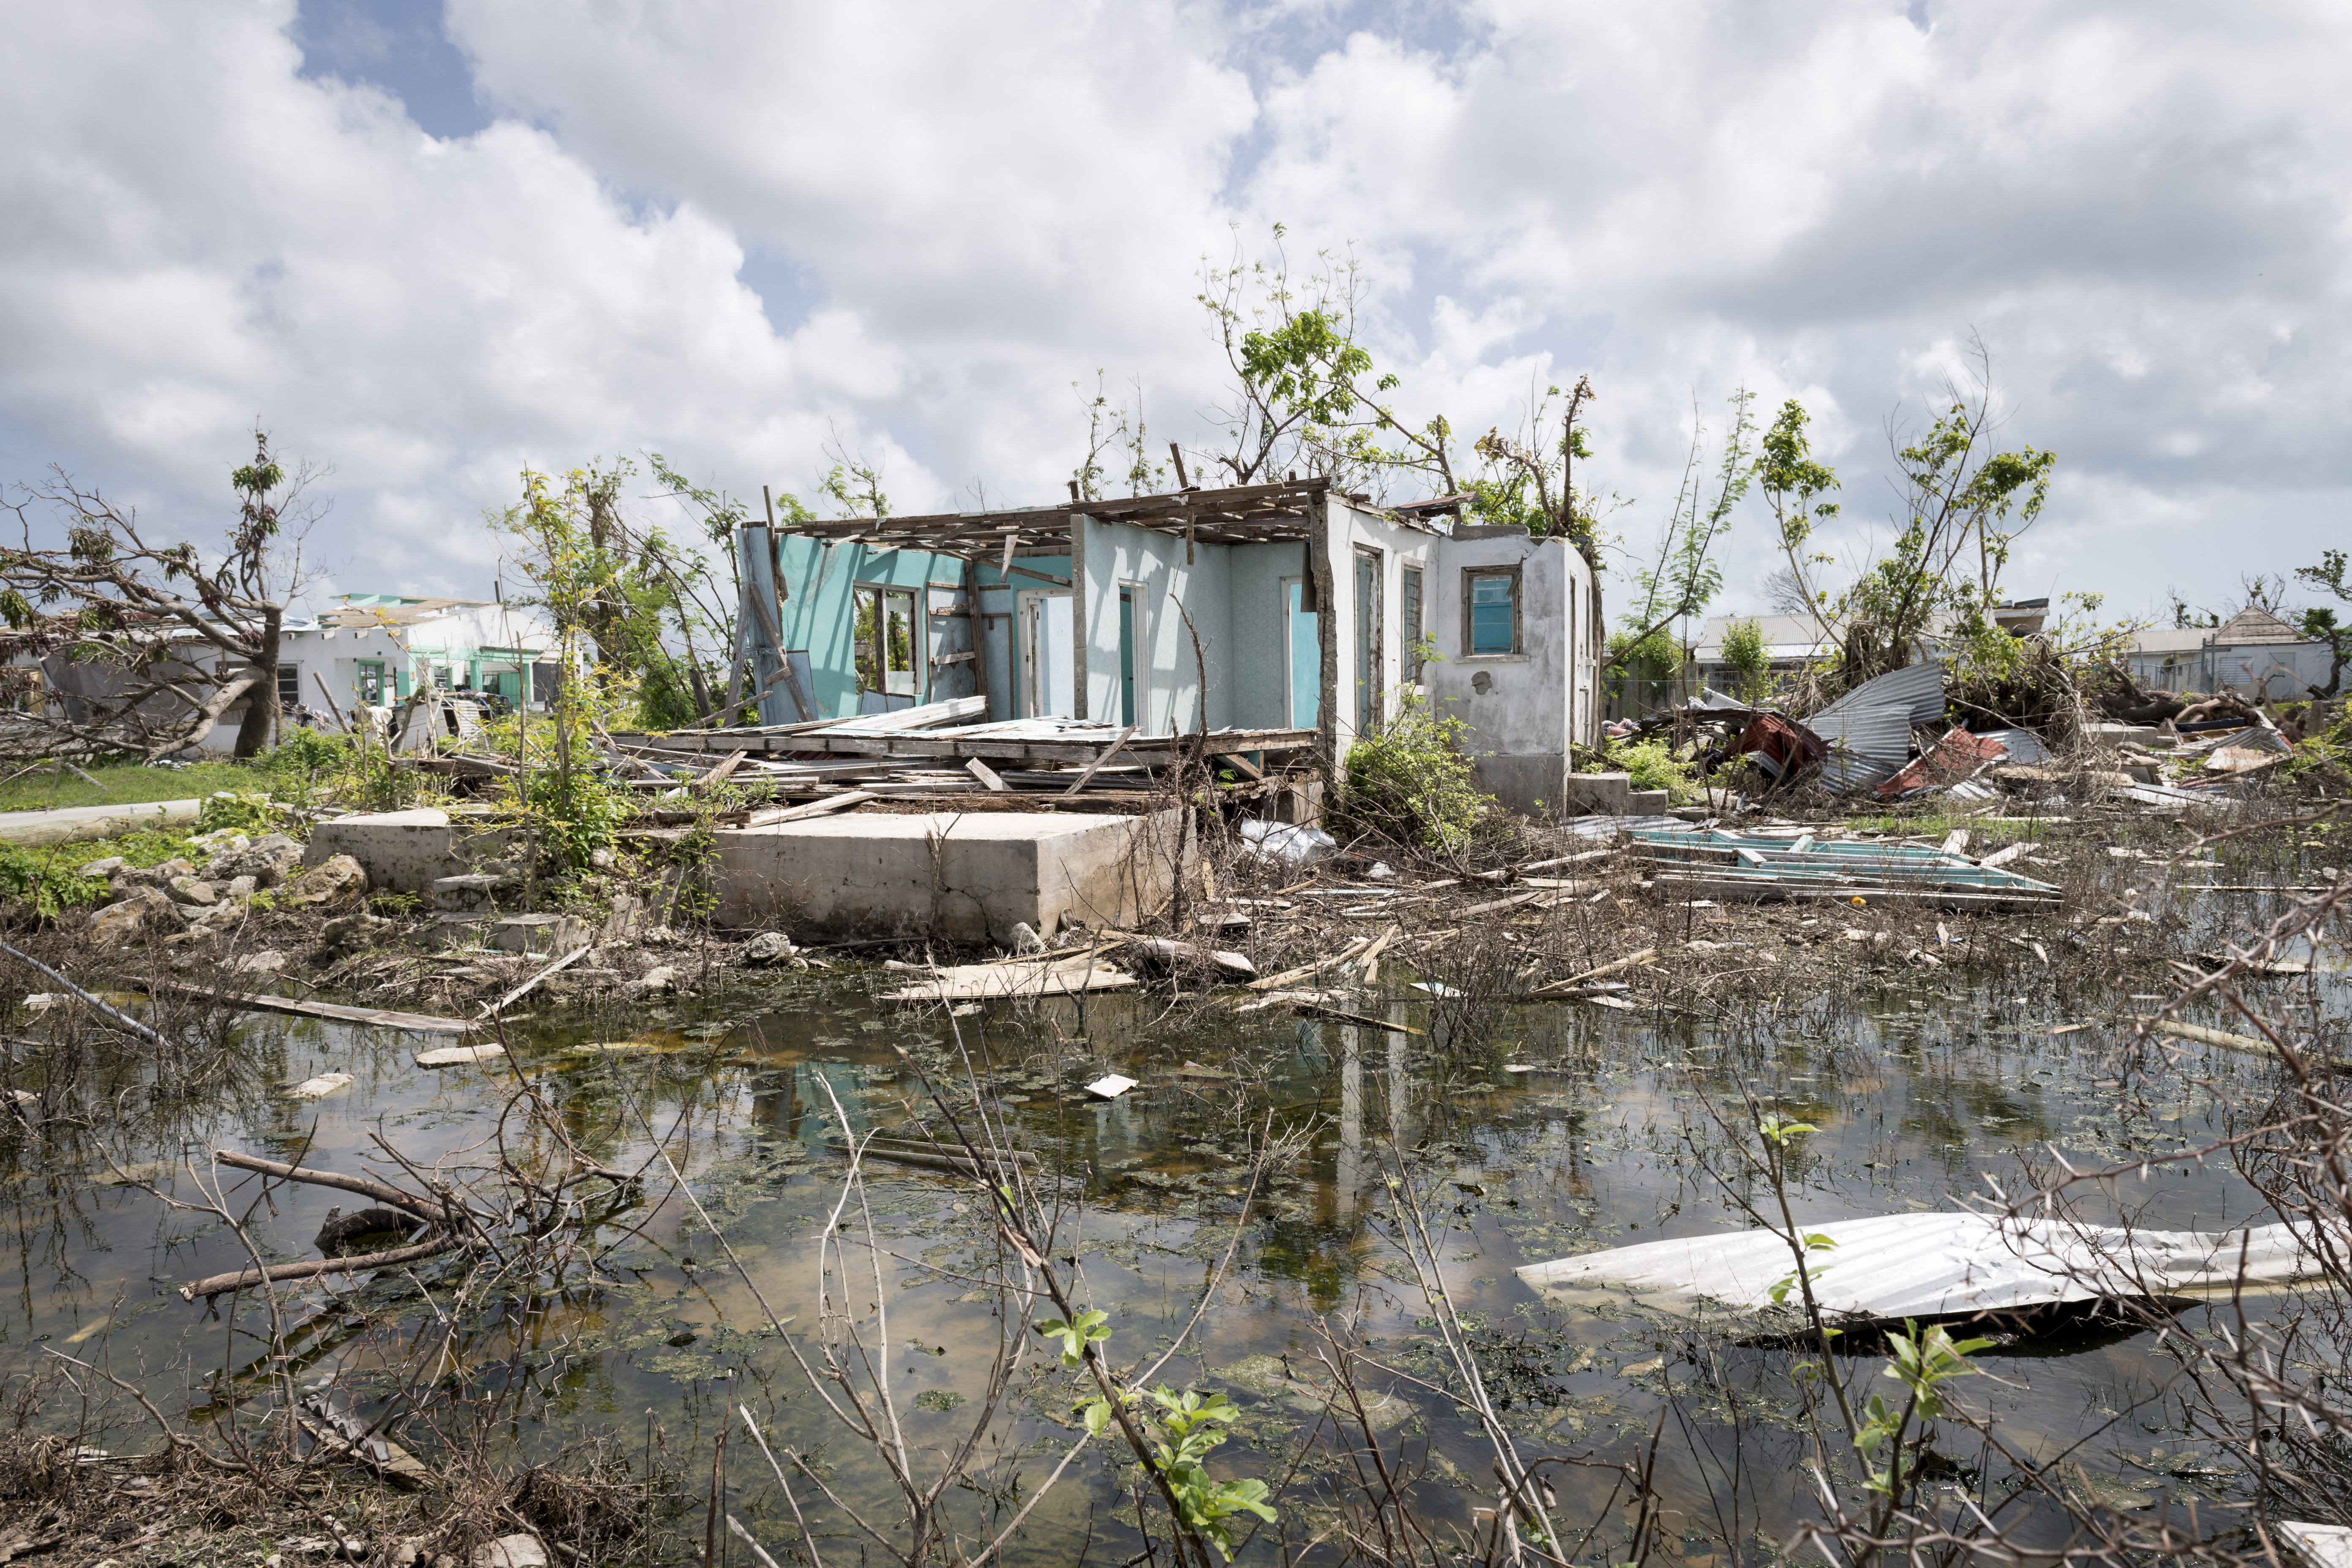 Codrington, Barbuda after Hurricane Irma  (Photo via UN)